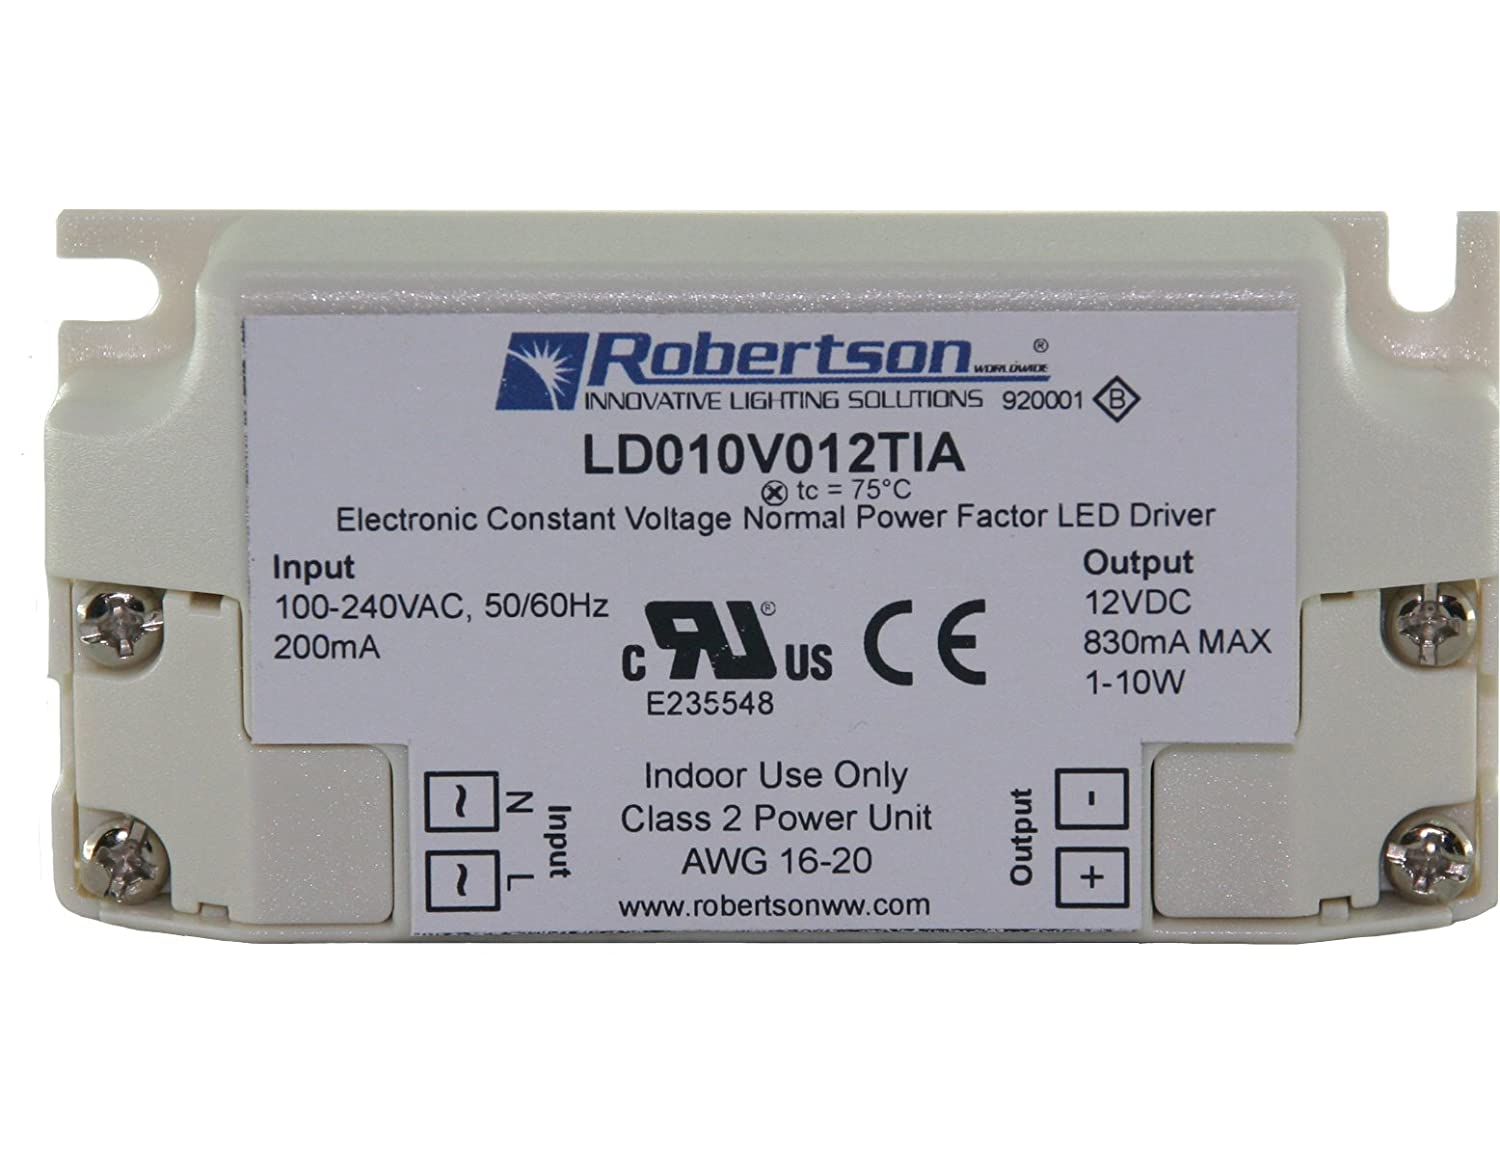 ROBERTSON 3P30015 LD010V012TIA LED Driver 1-10 Watt 100-240Vac Input 40-830 mA Constant Voltage 12Vdc Output Normal Power Factor ...  sc 1 st  2DayDeliver : robertson innovative lighting solutions - www.canuckmediamonitor.org